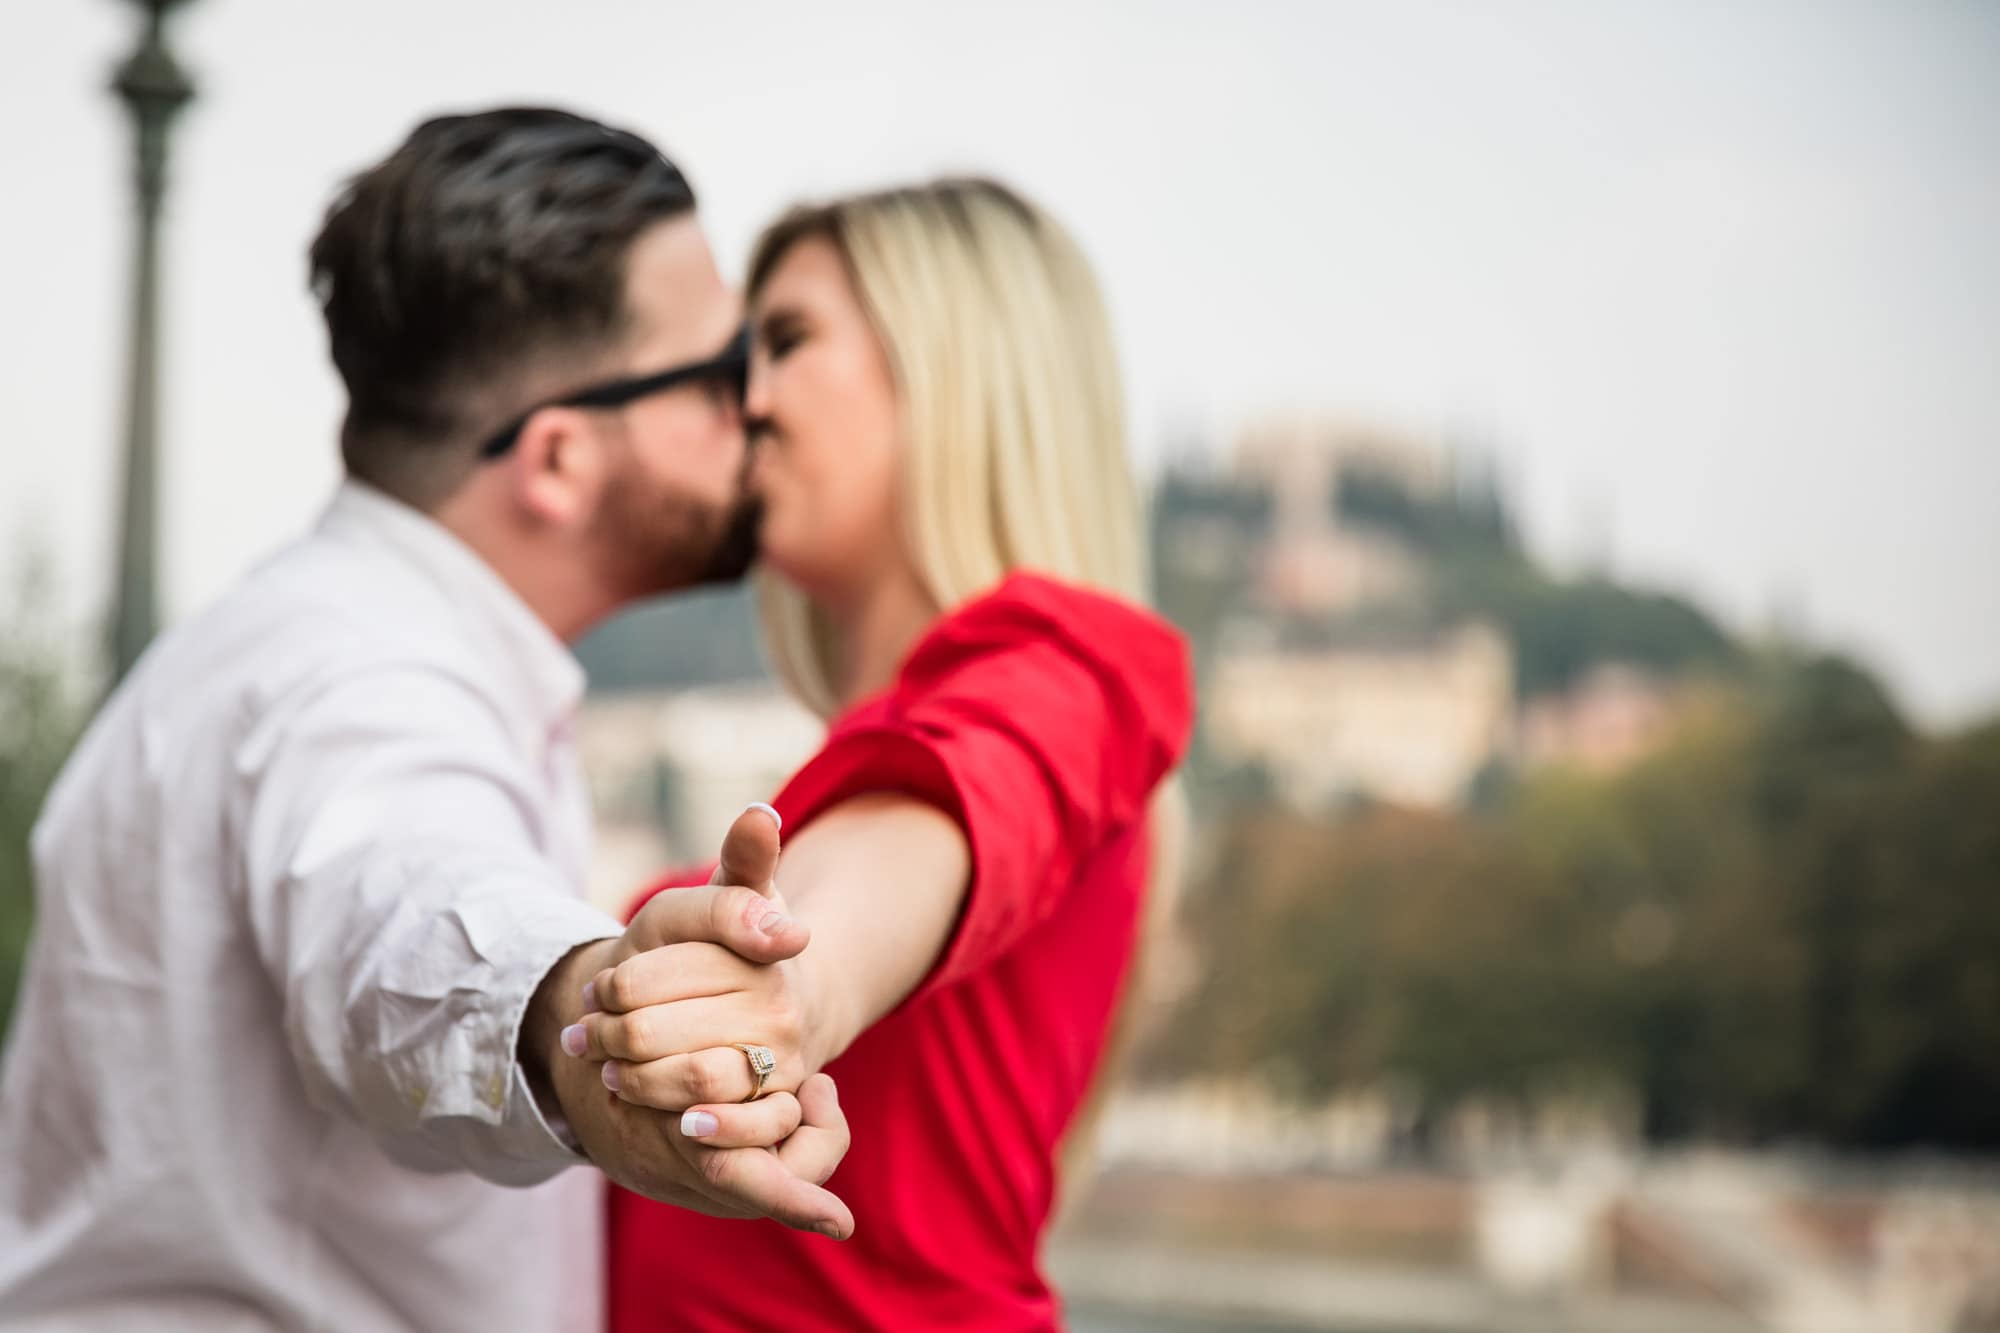 Engaged couple kissing beside the River Adige in Verona, Italy